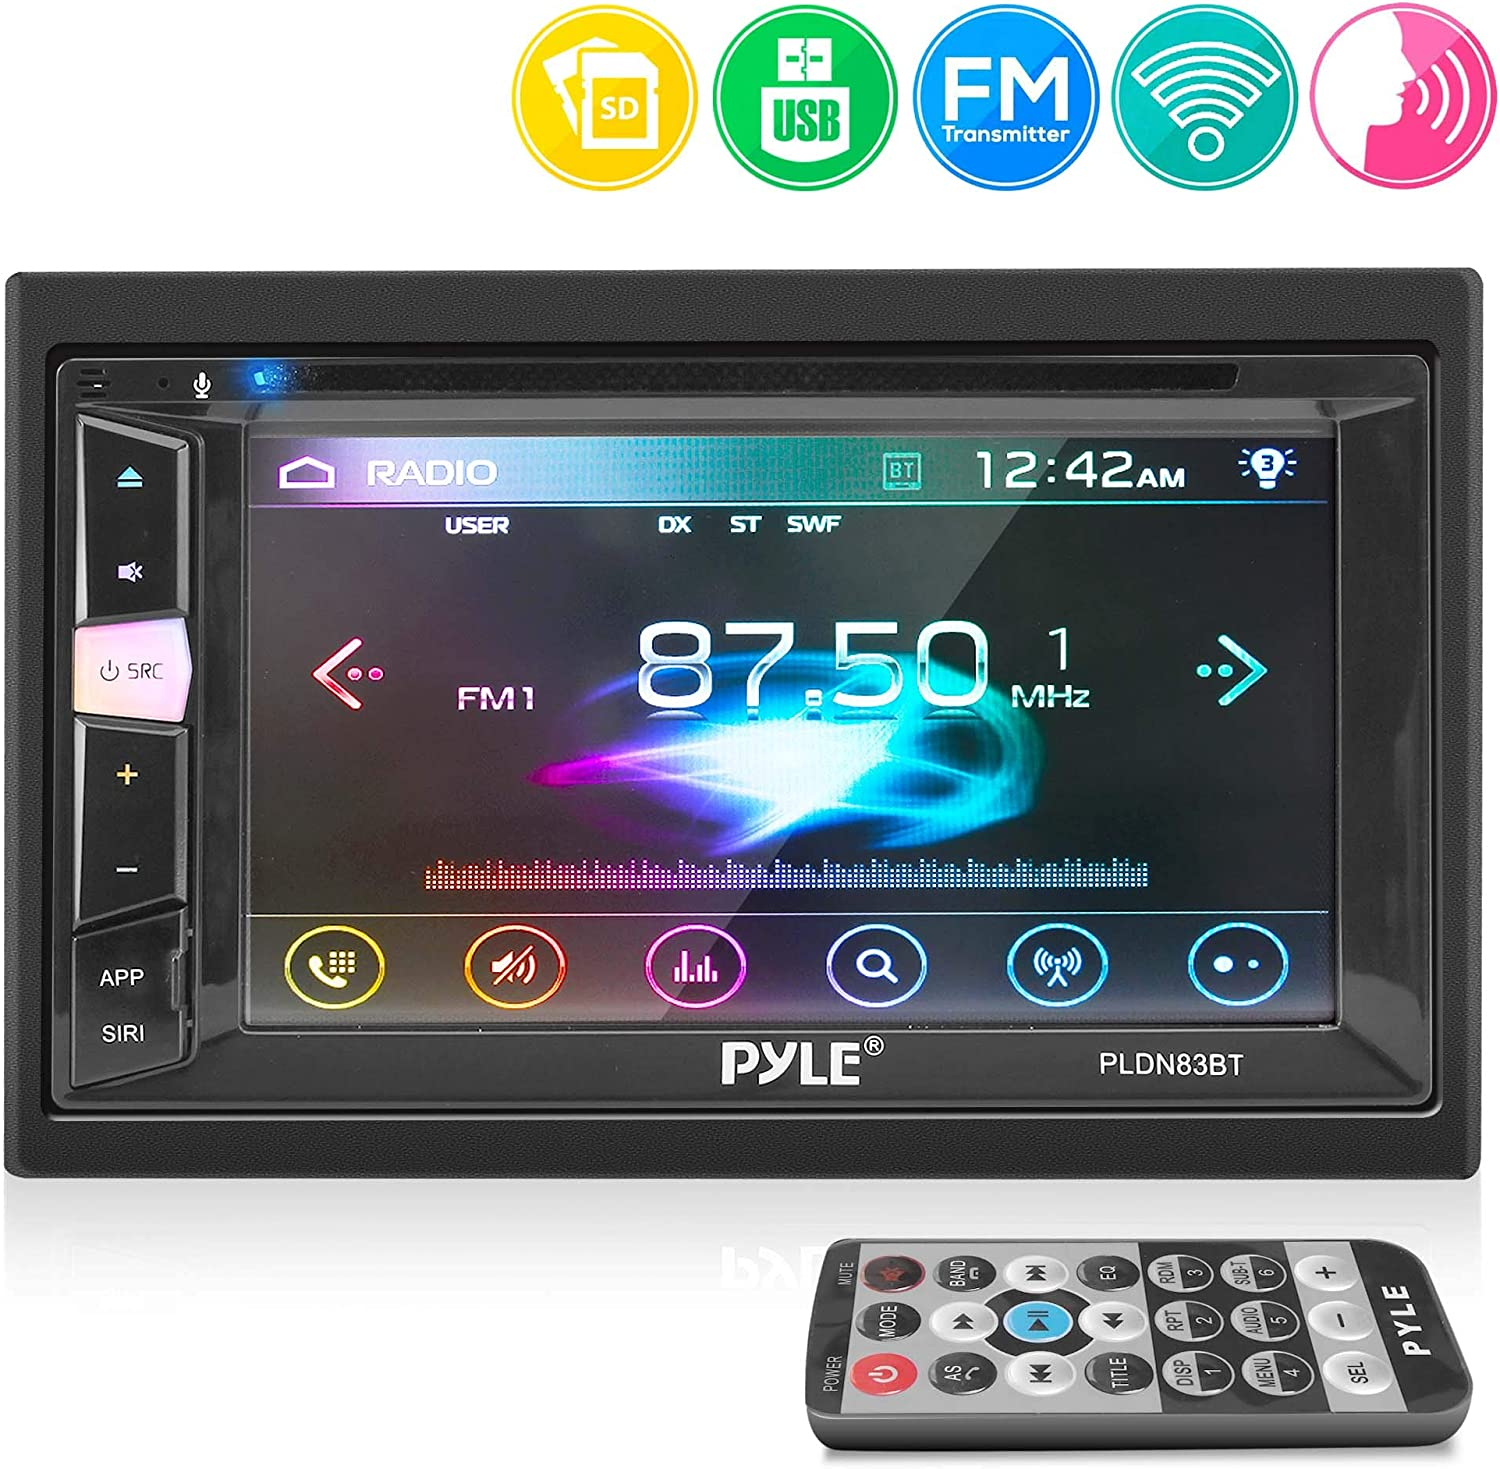 Pyle Double Din Car Stereo Player